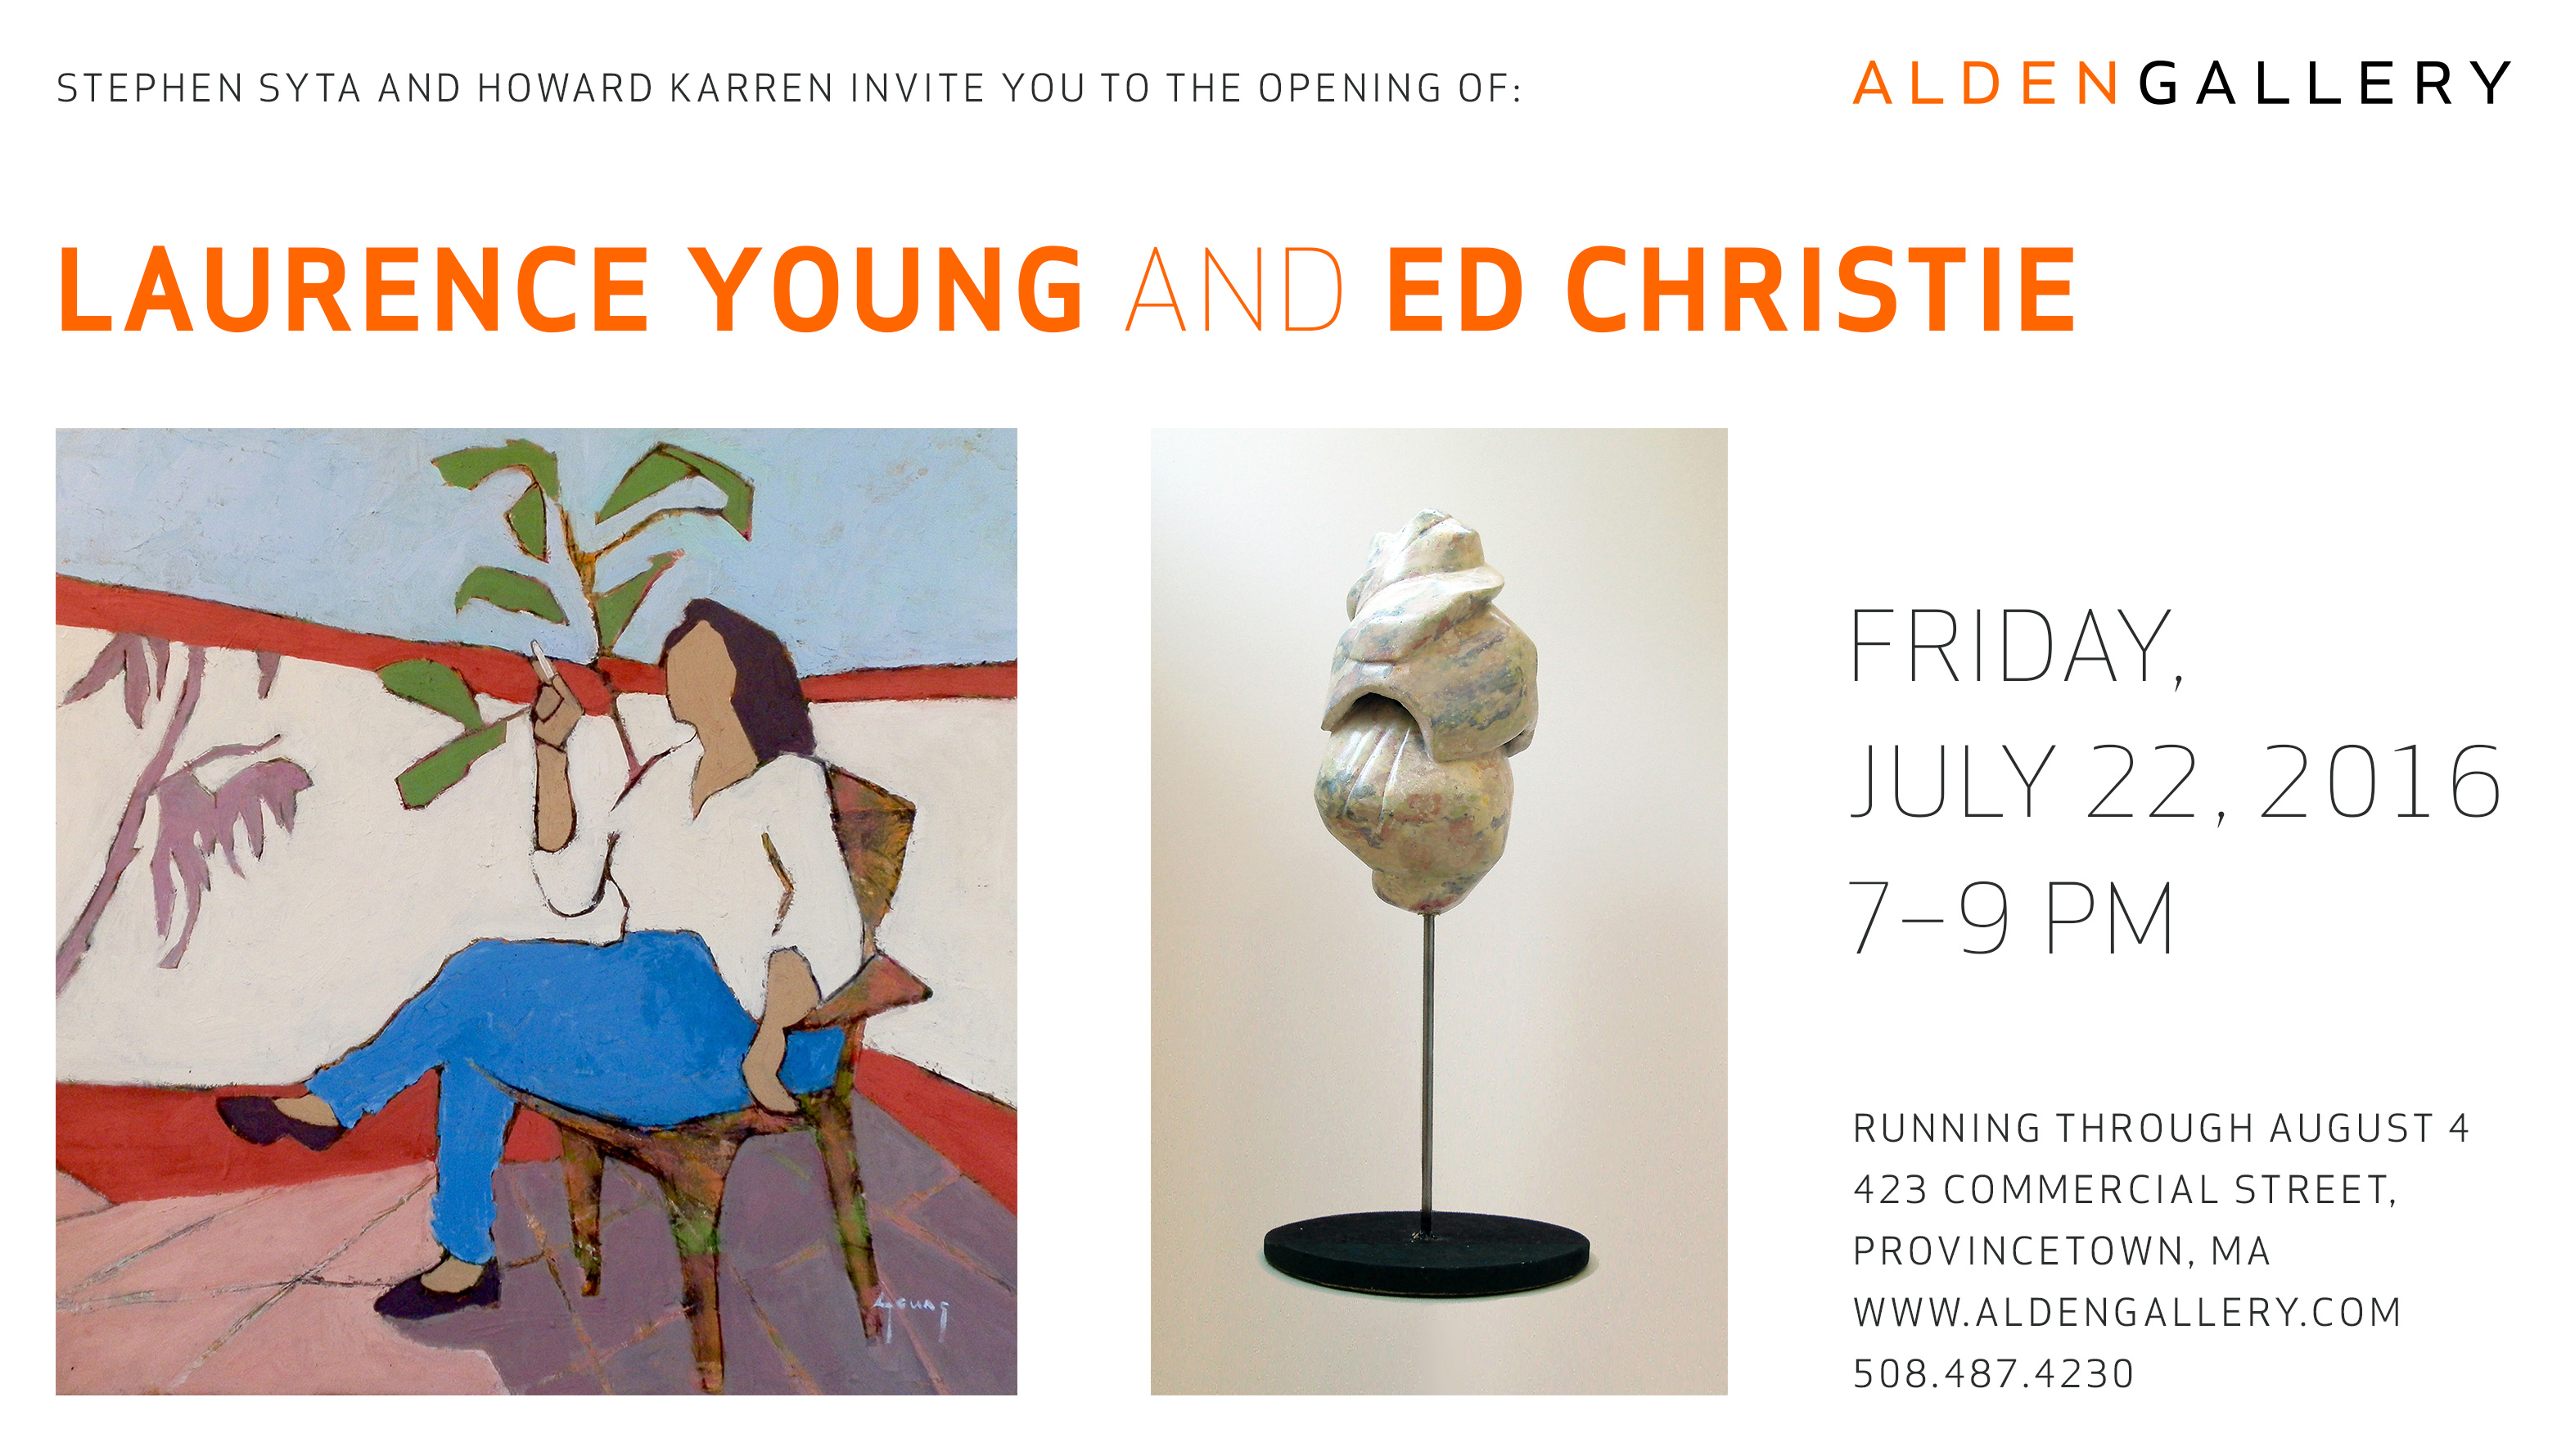 aldengallery_young_christie_2016